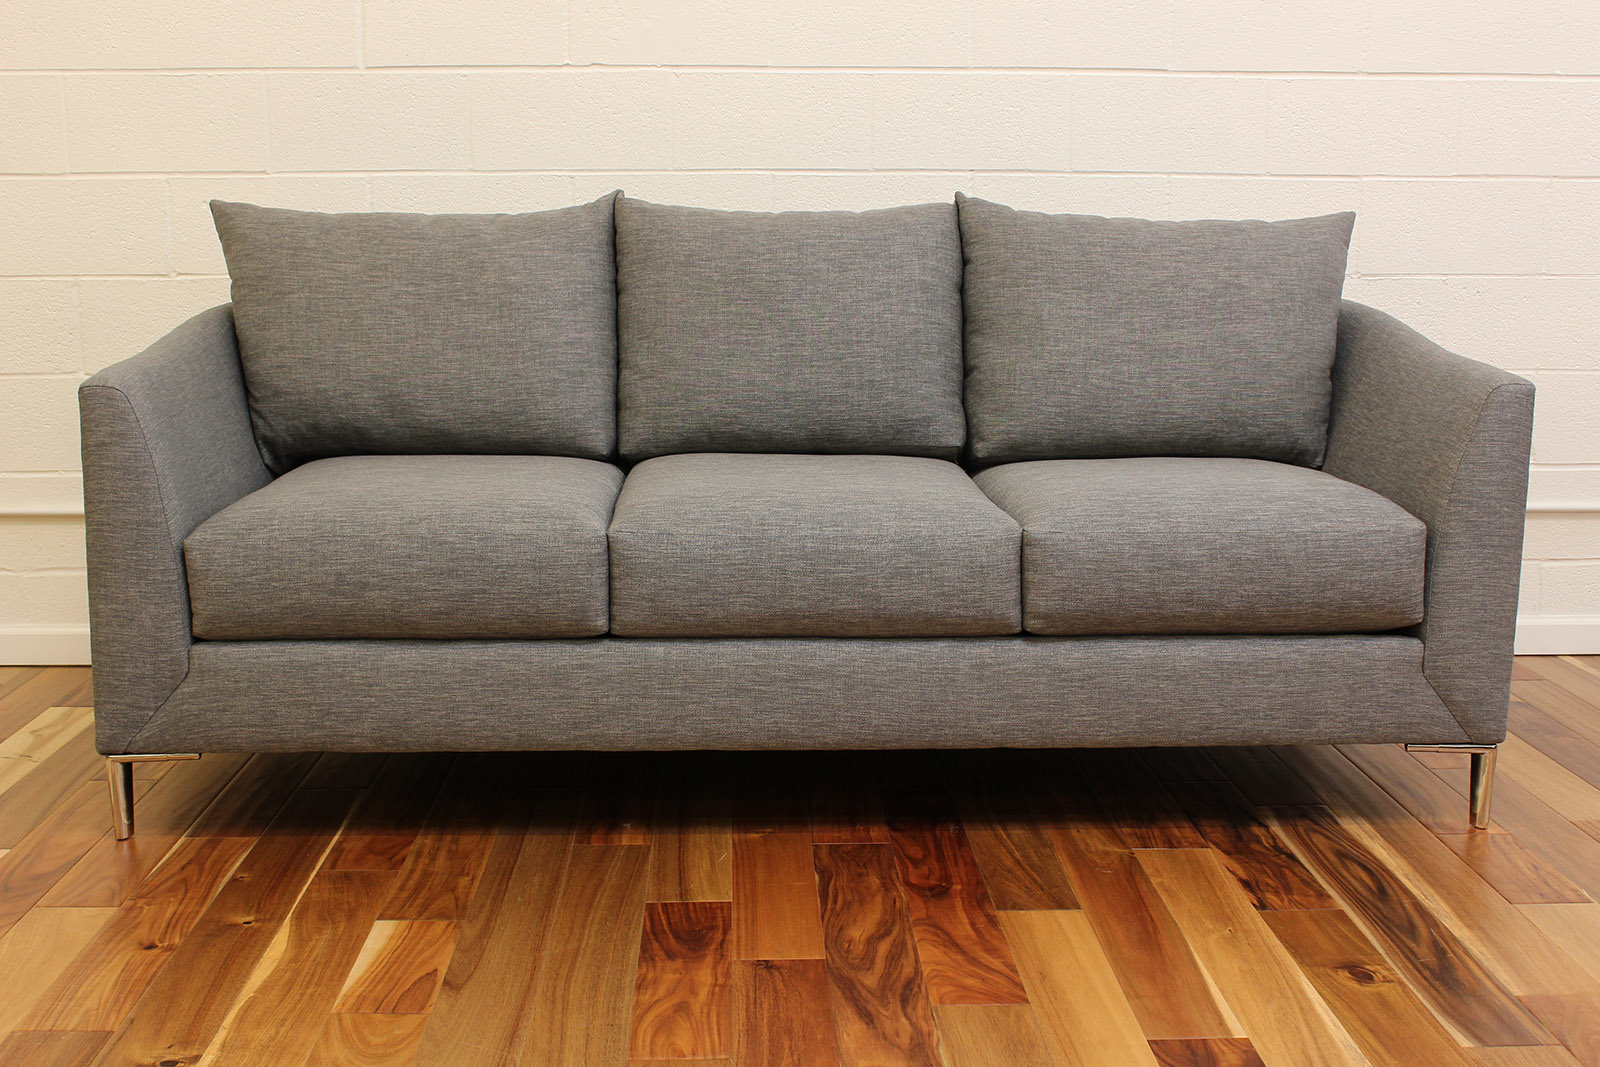 Modern Sofa Habitat - Cozy Couch Sf